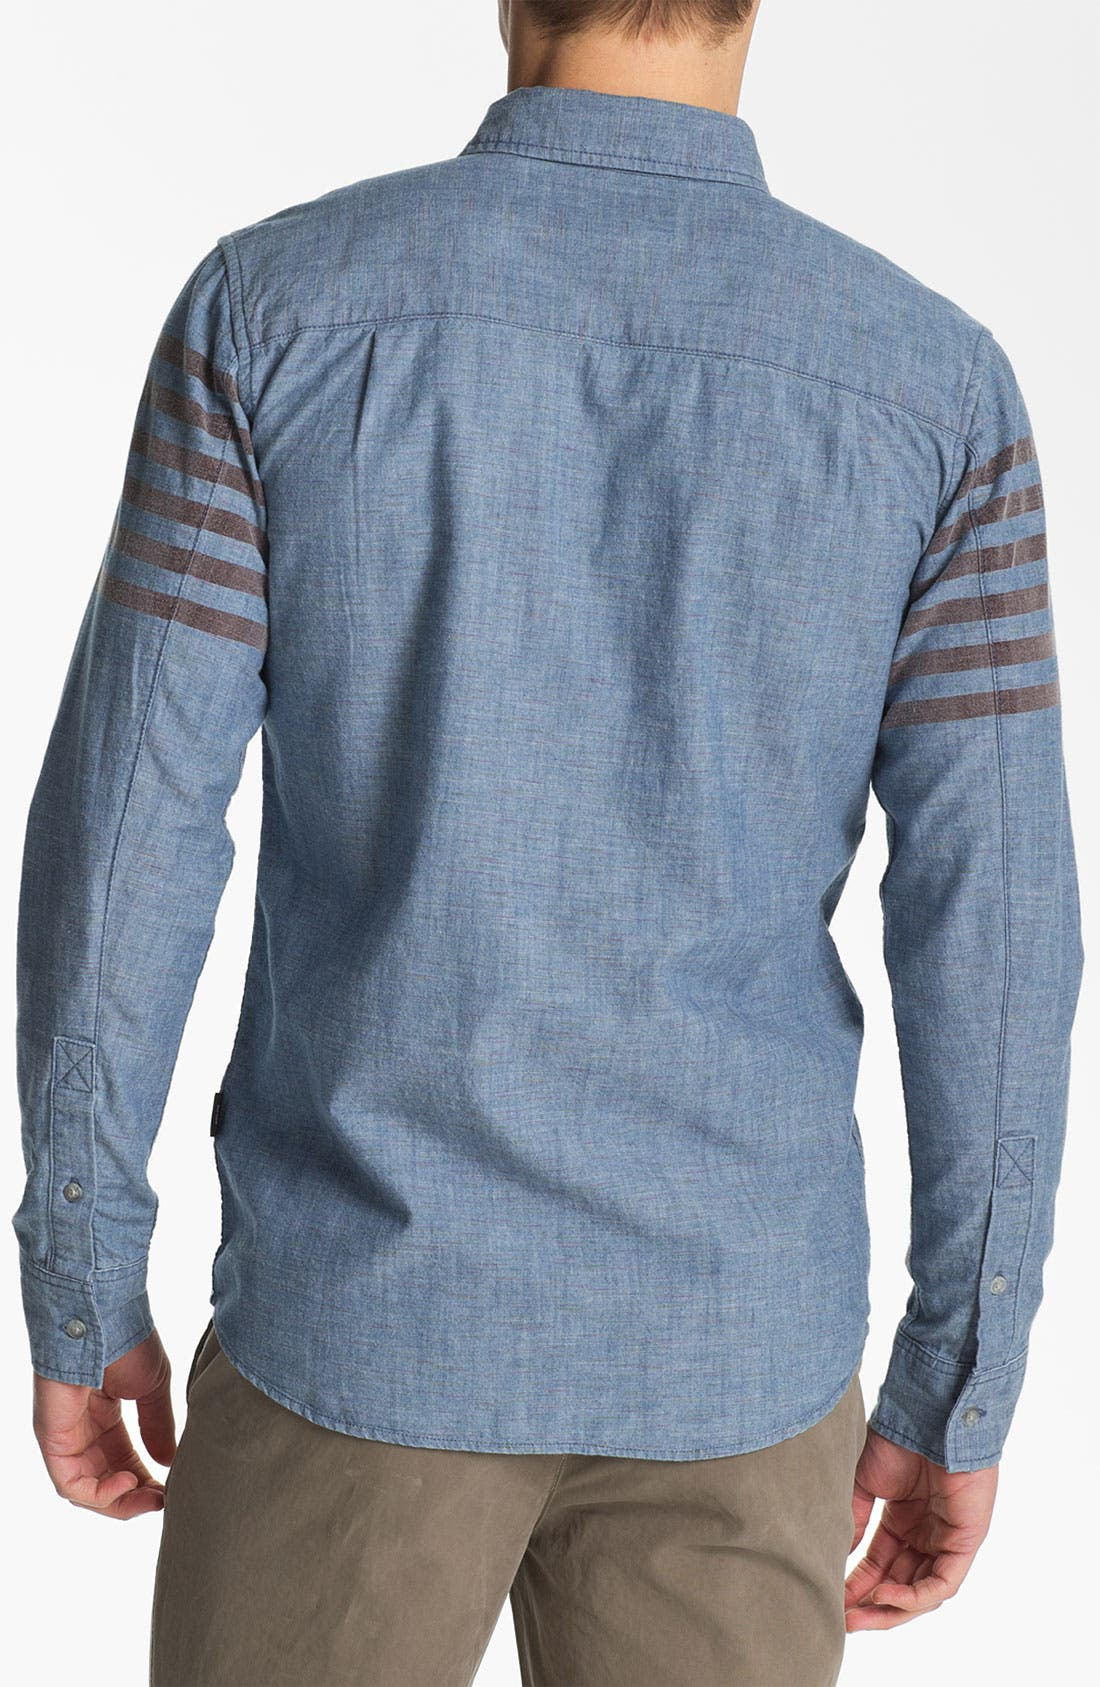 Alternate Image 2  - 55DSL Stripe Print Denim Cotton Shirt